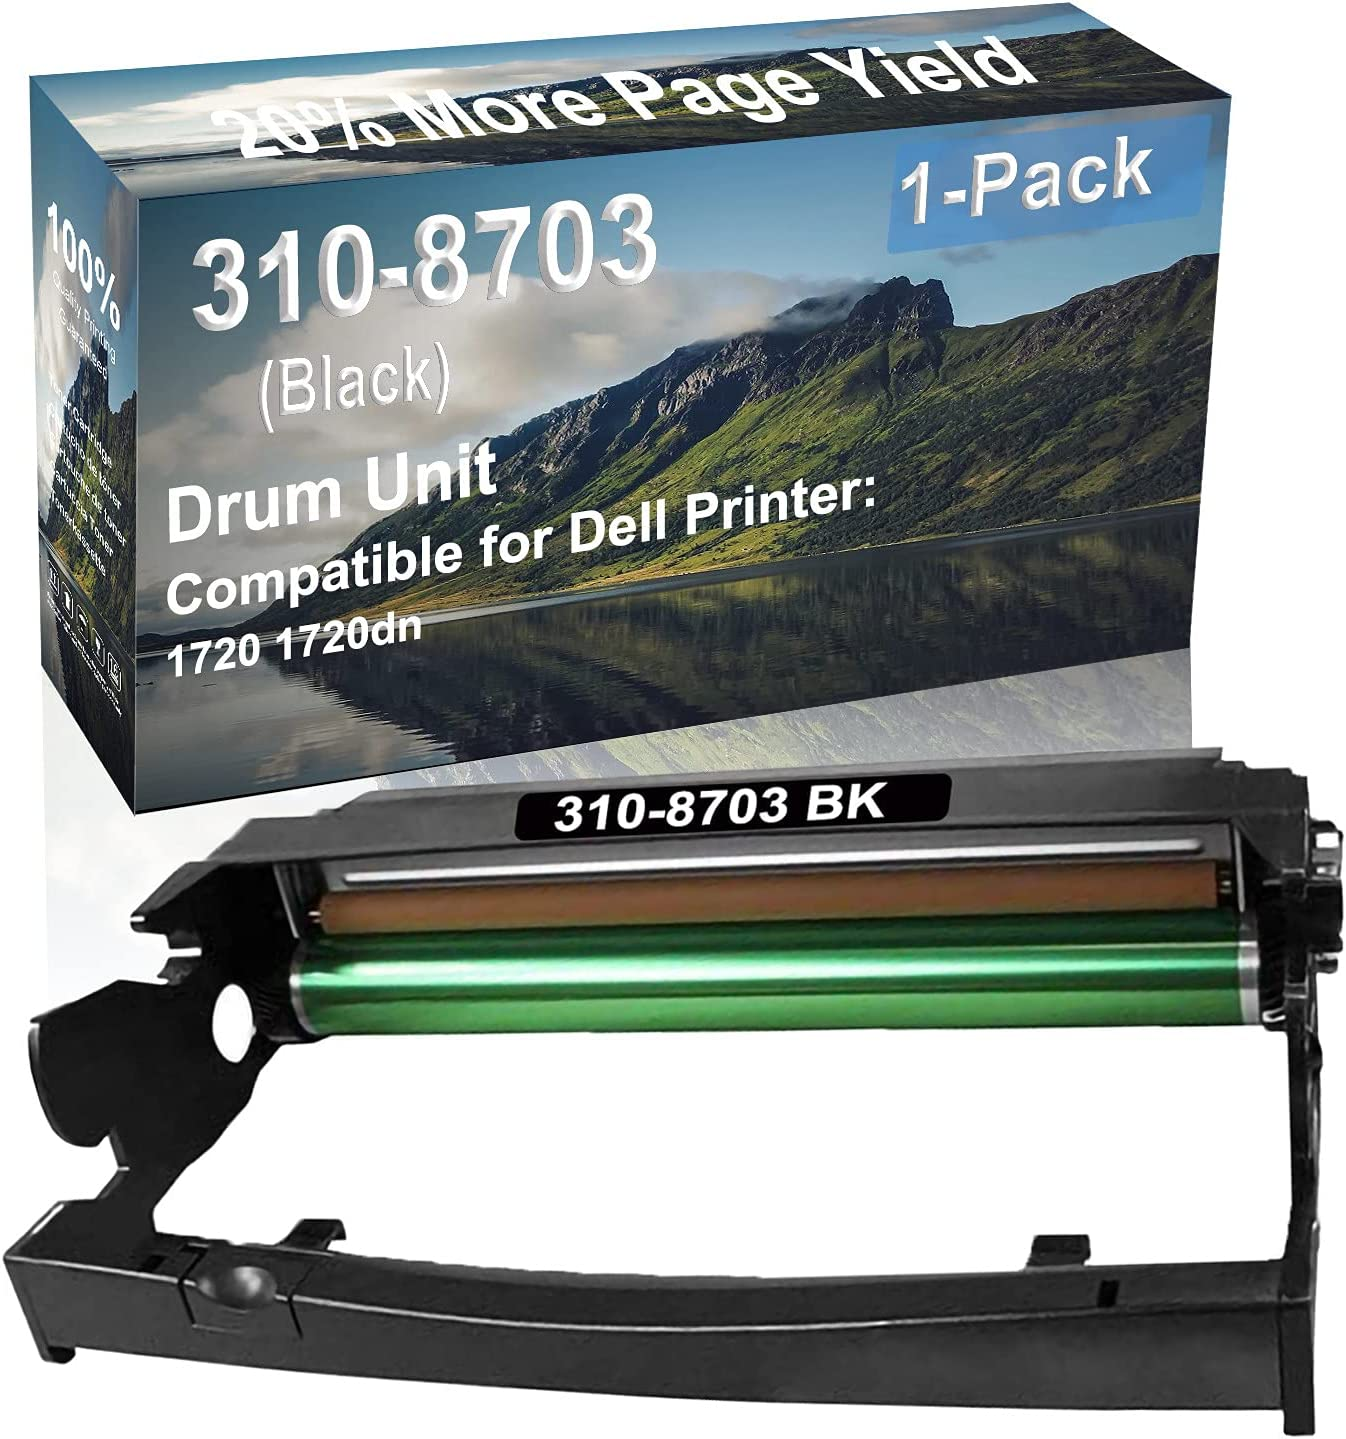 1-Pack Compatible Drum Unit (Black) Replacement for Dell 310-8703 Drum Kit use for Dell 1720 1720dn Printer